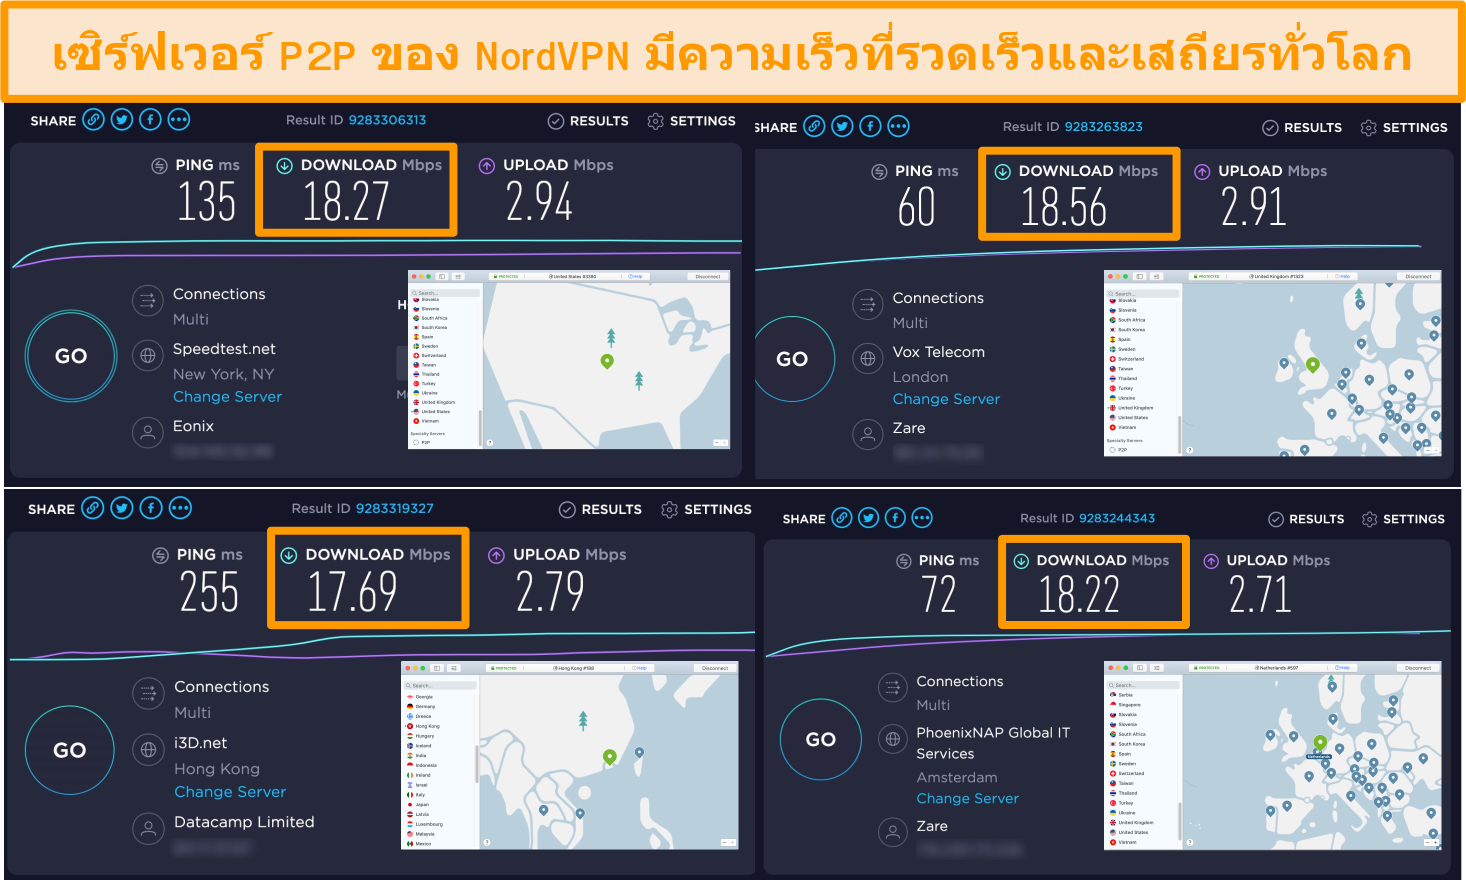 Screenshot of NordVPN servers in the US, UK, Netherlands, and Hong Kong with speed test results